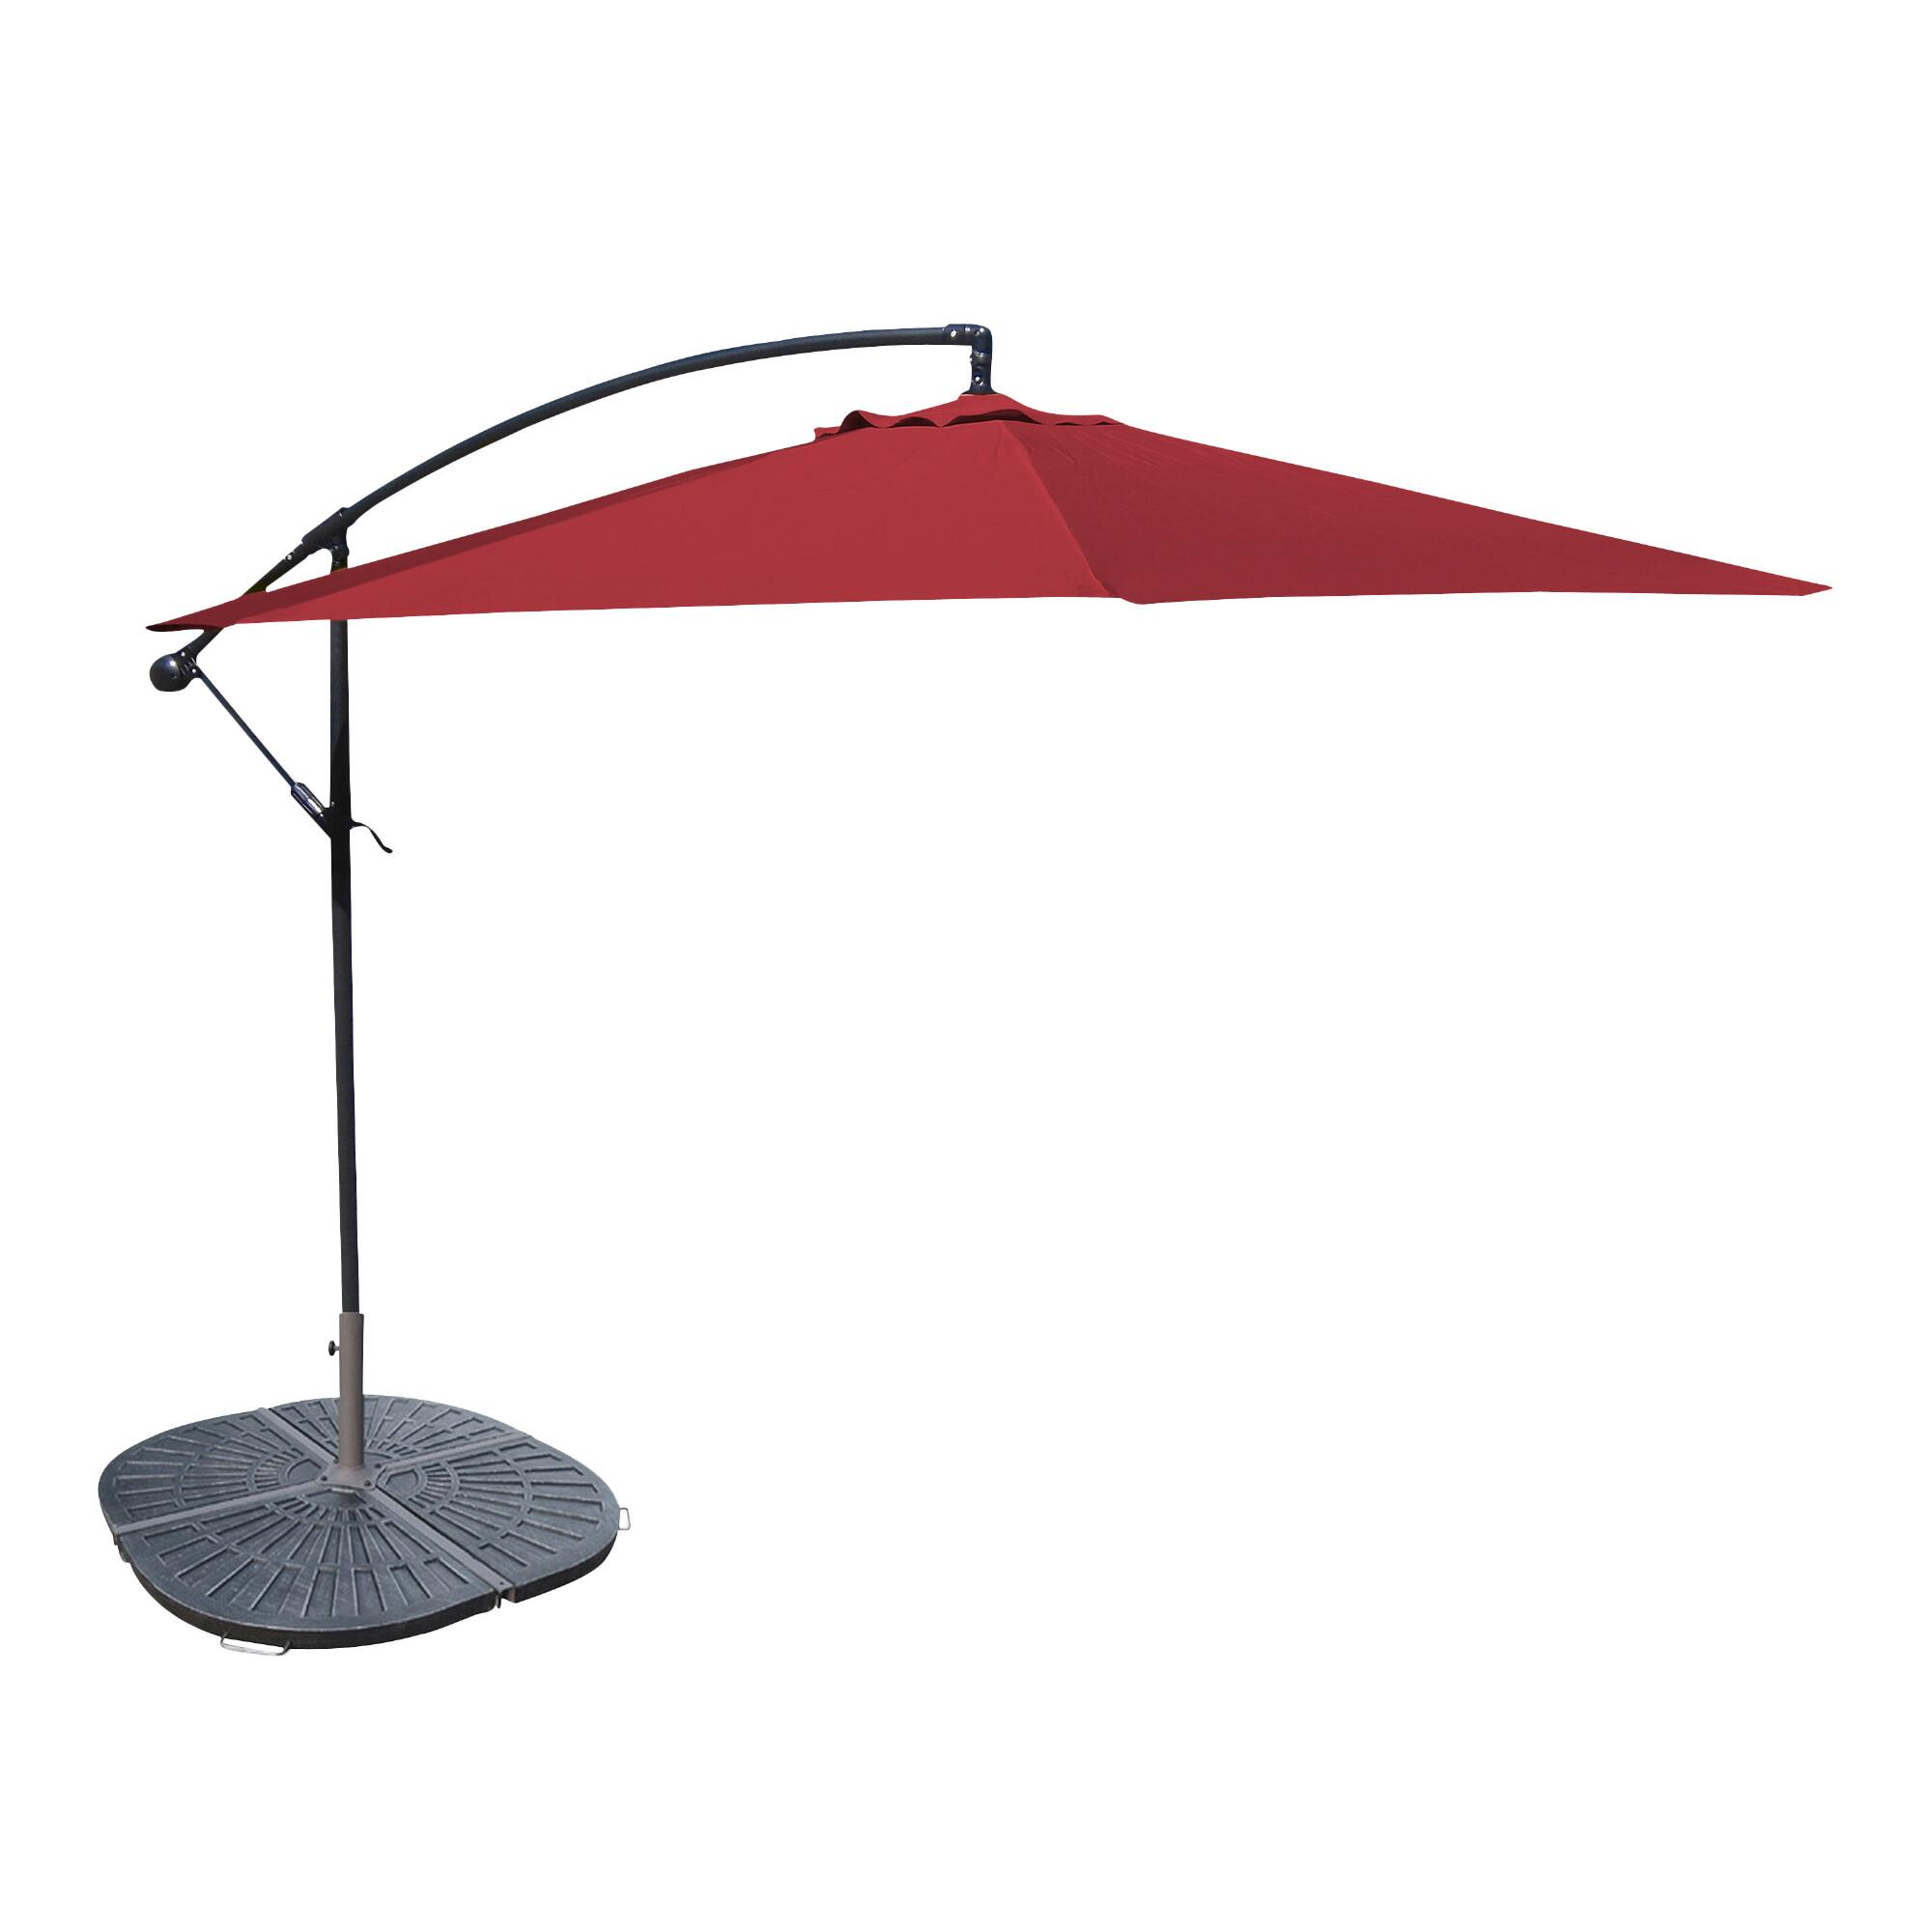 Umbrella Stand Next: 10' Red Cantilever Umbrella And Weight Base